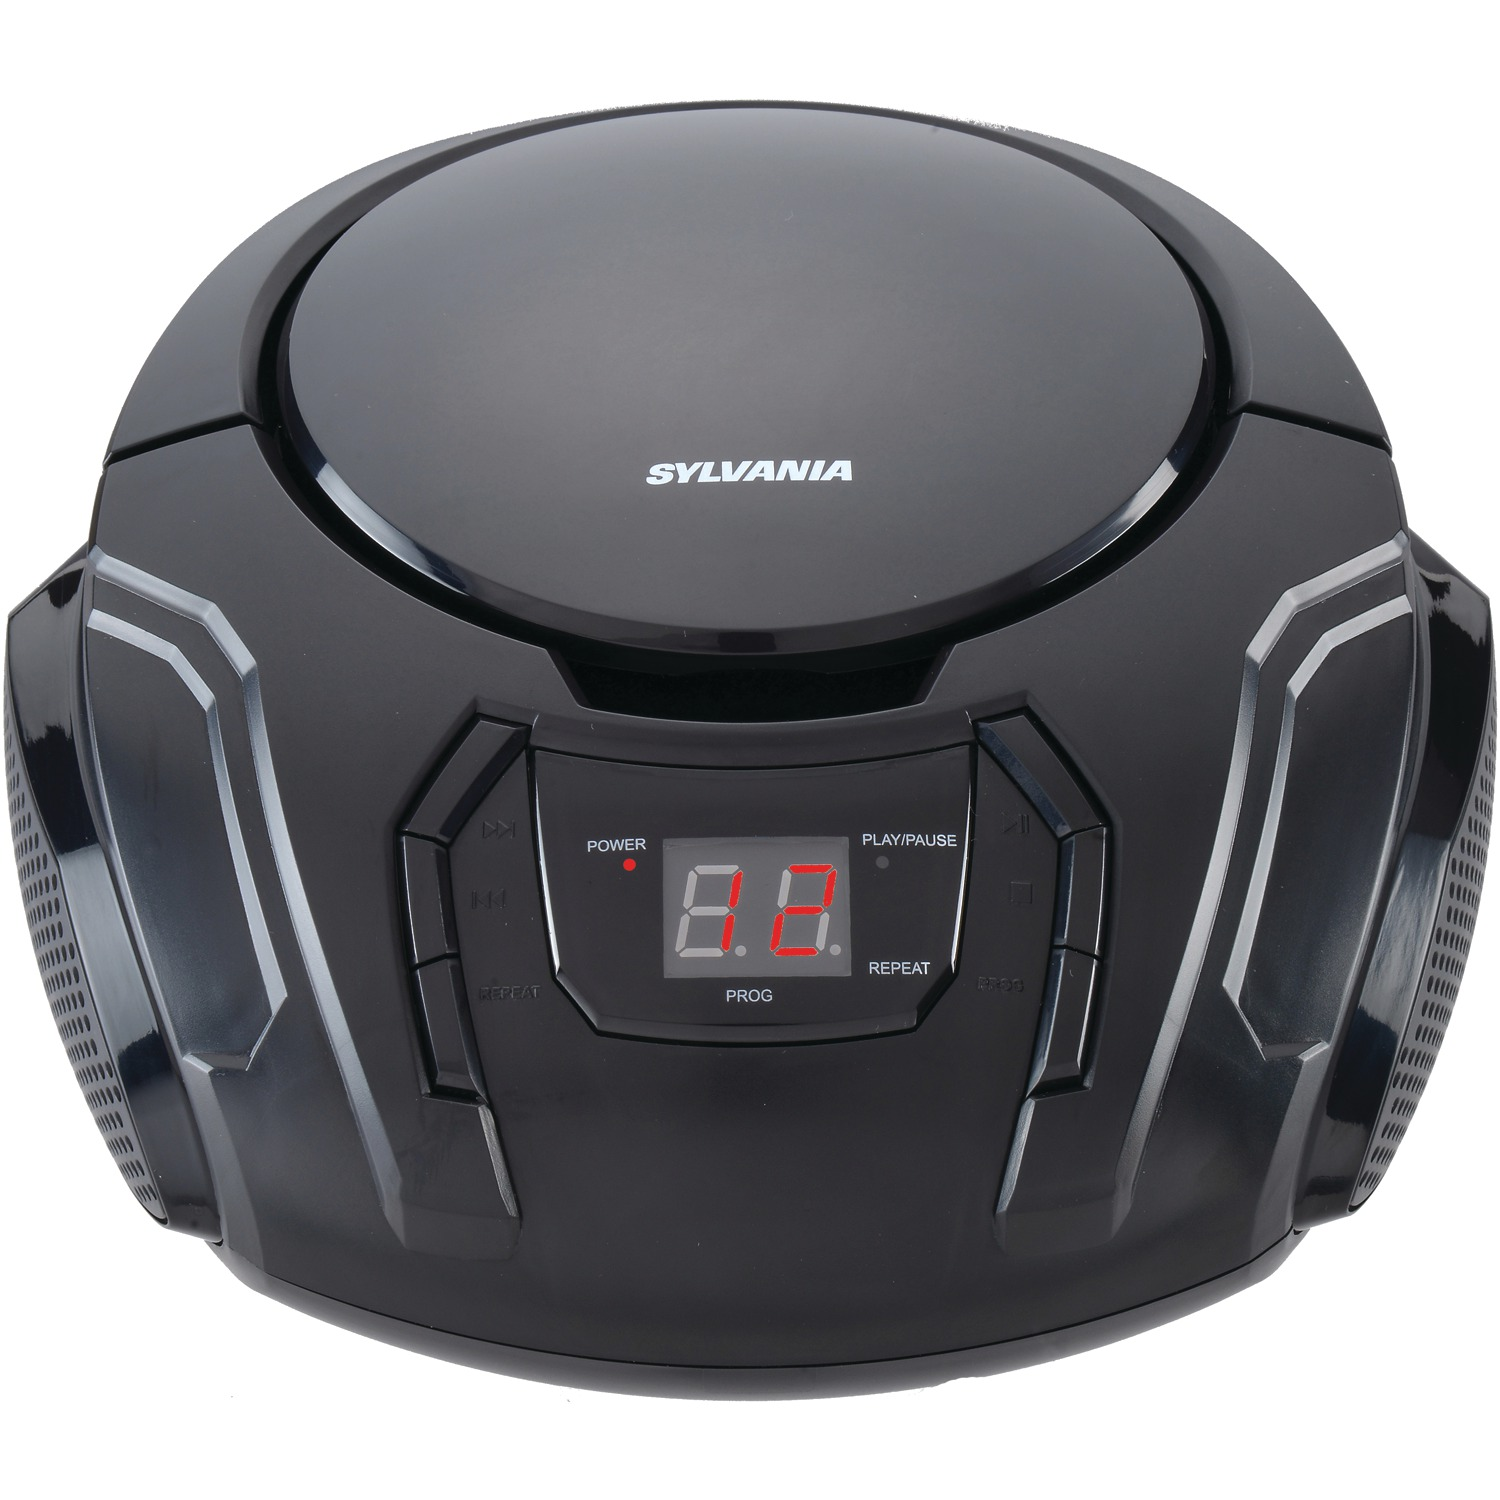 SYLVANIA SRCD261 Portable CD Player with AM/FM Radio (Black)